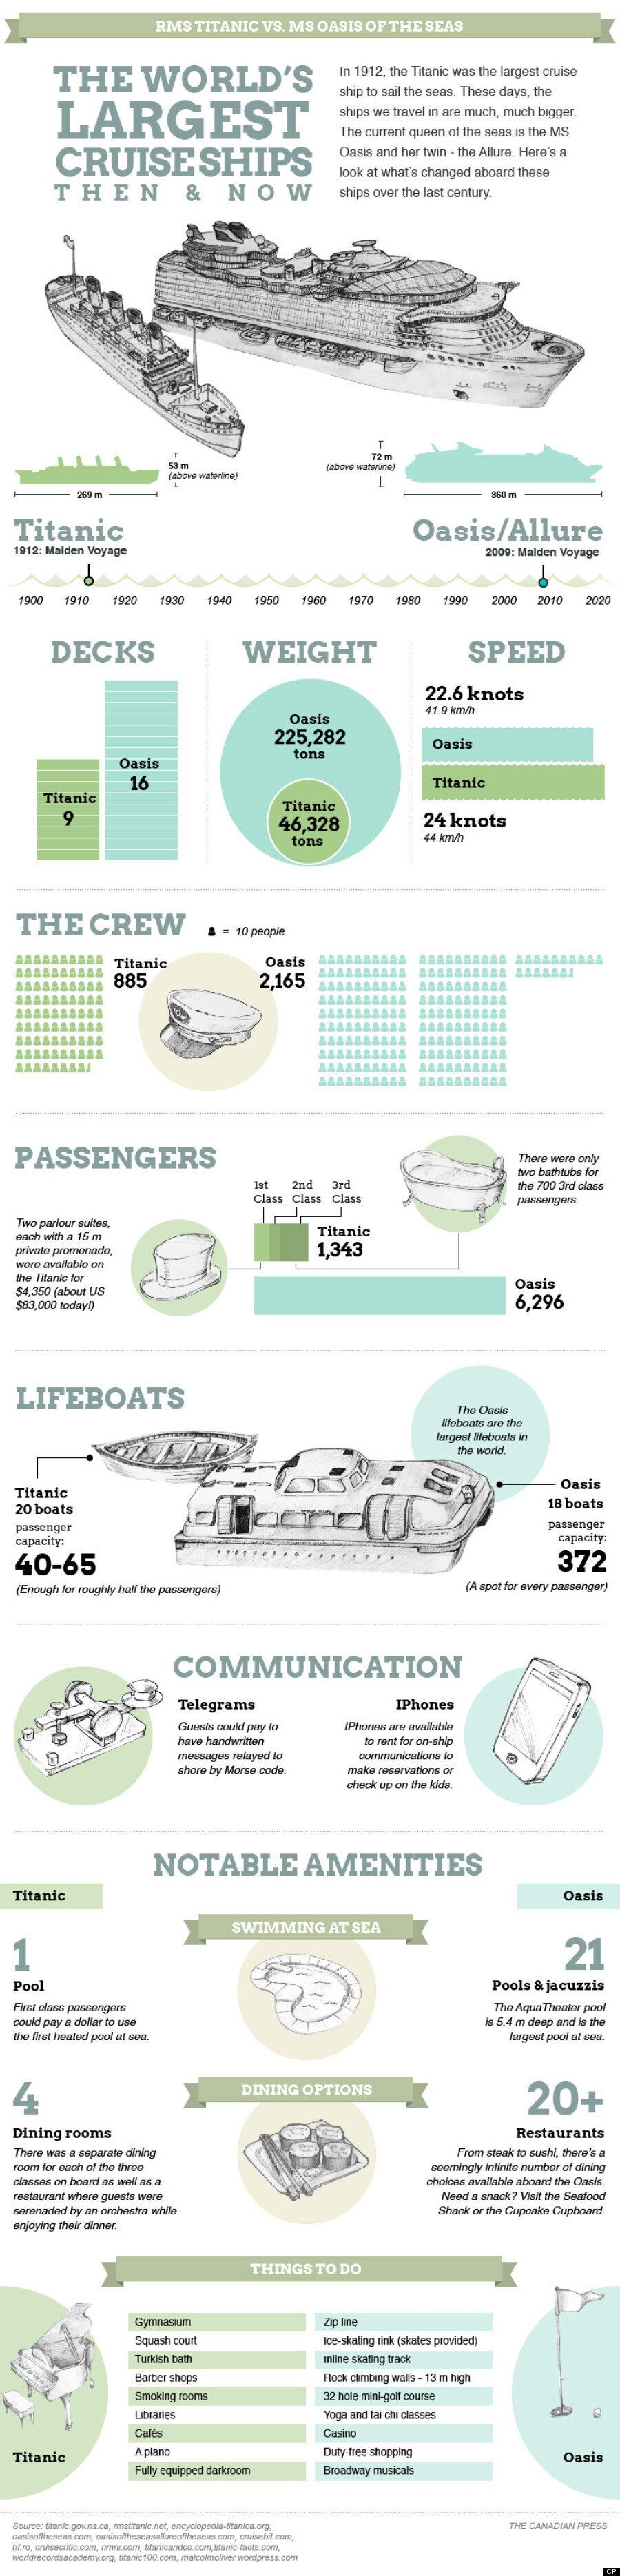 Titanic vs. Oasis Of The Seas: Compare World's Biggest Cruise Ships, Then And Now